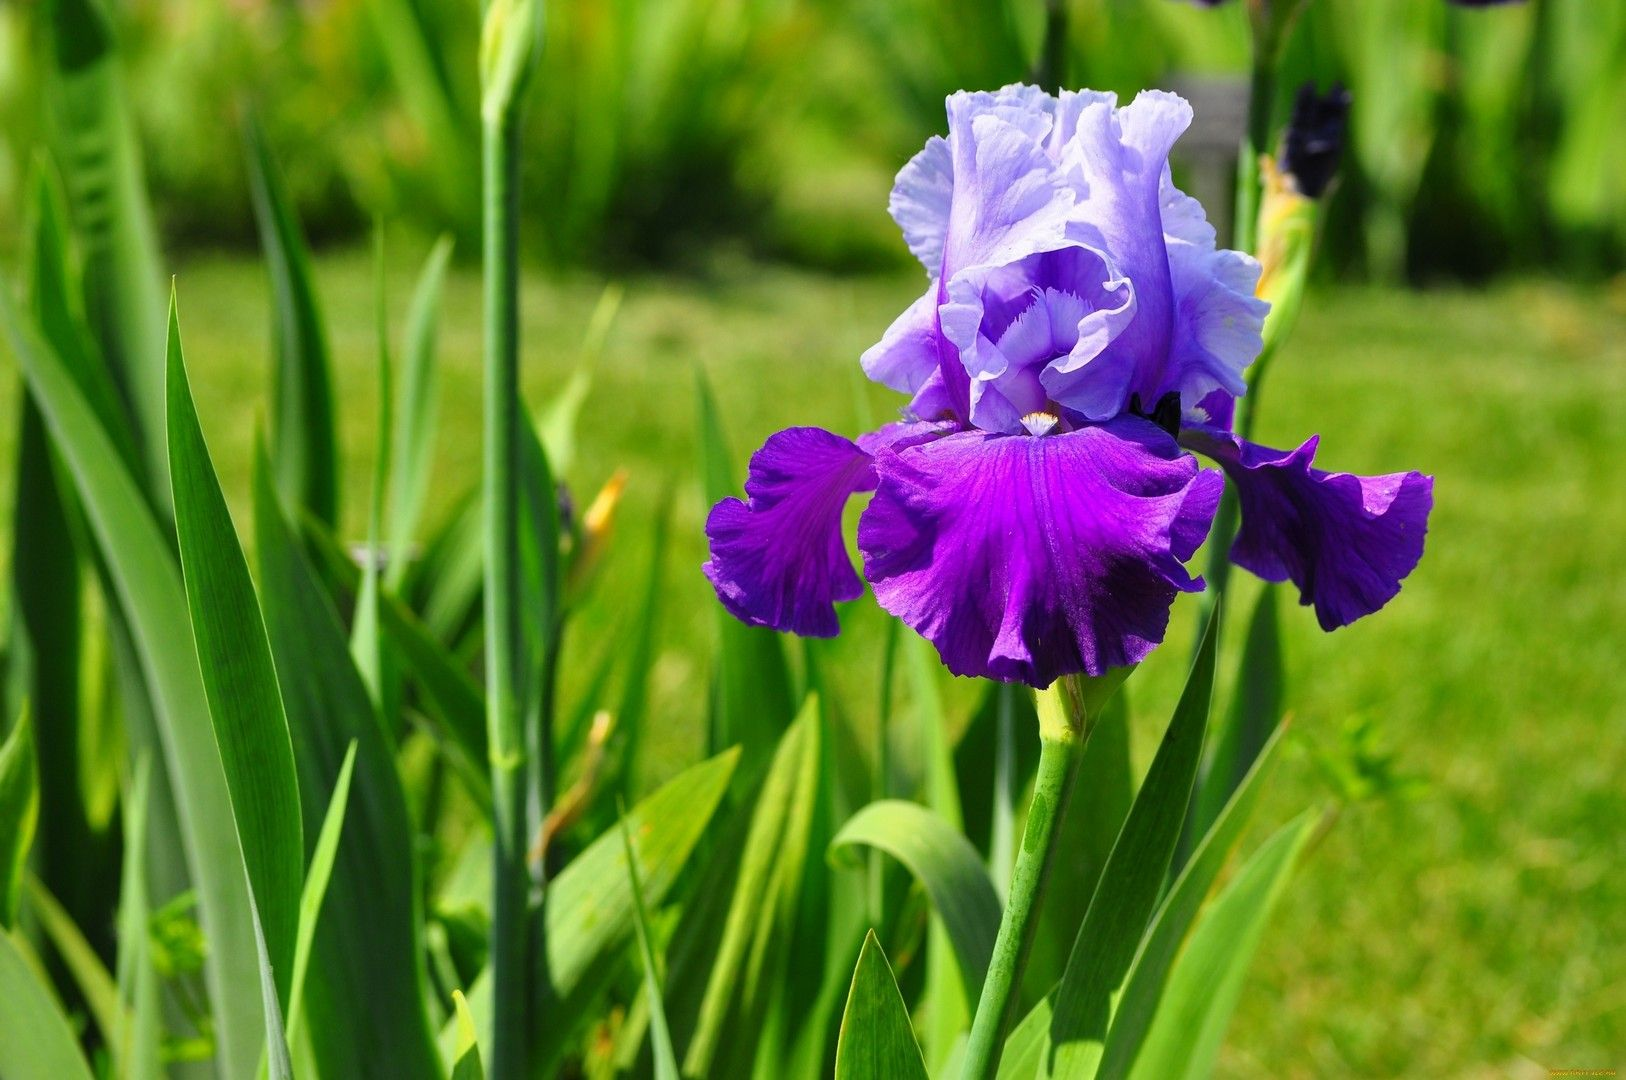 Iris wallpapers flowers wallpaper pinterest iris and flowers bearded iris need neutral or slightly alkaline soil be sure it has to be moisture permeability irises not tolerate acidic soil and clay izmirmasajfo Images